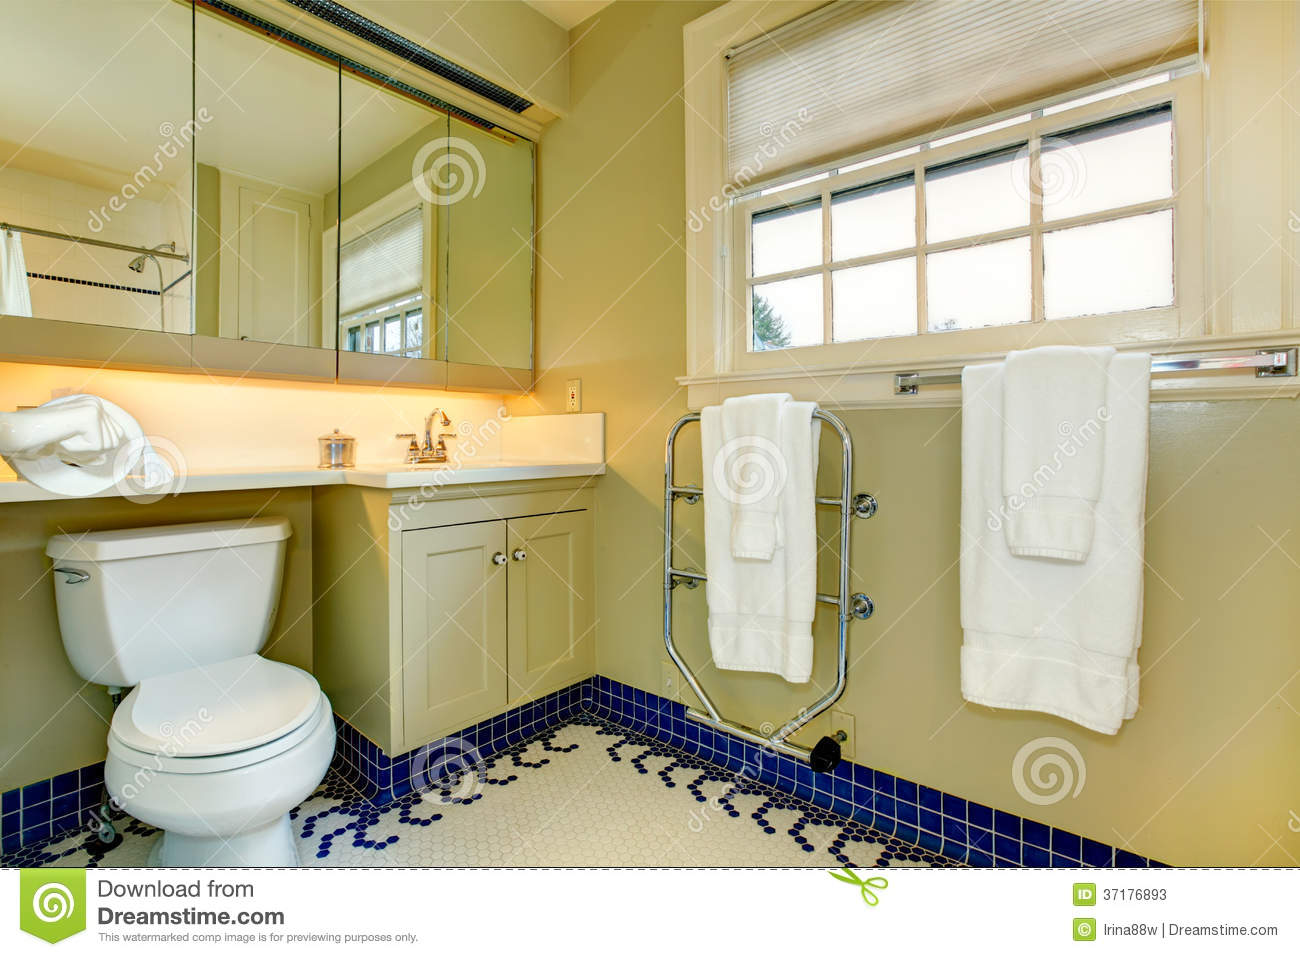 Bright yellow bathroom with blue tile floor stock image for Bathroom ideas yellow tile